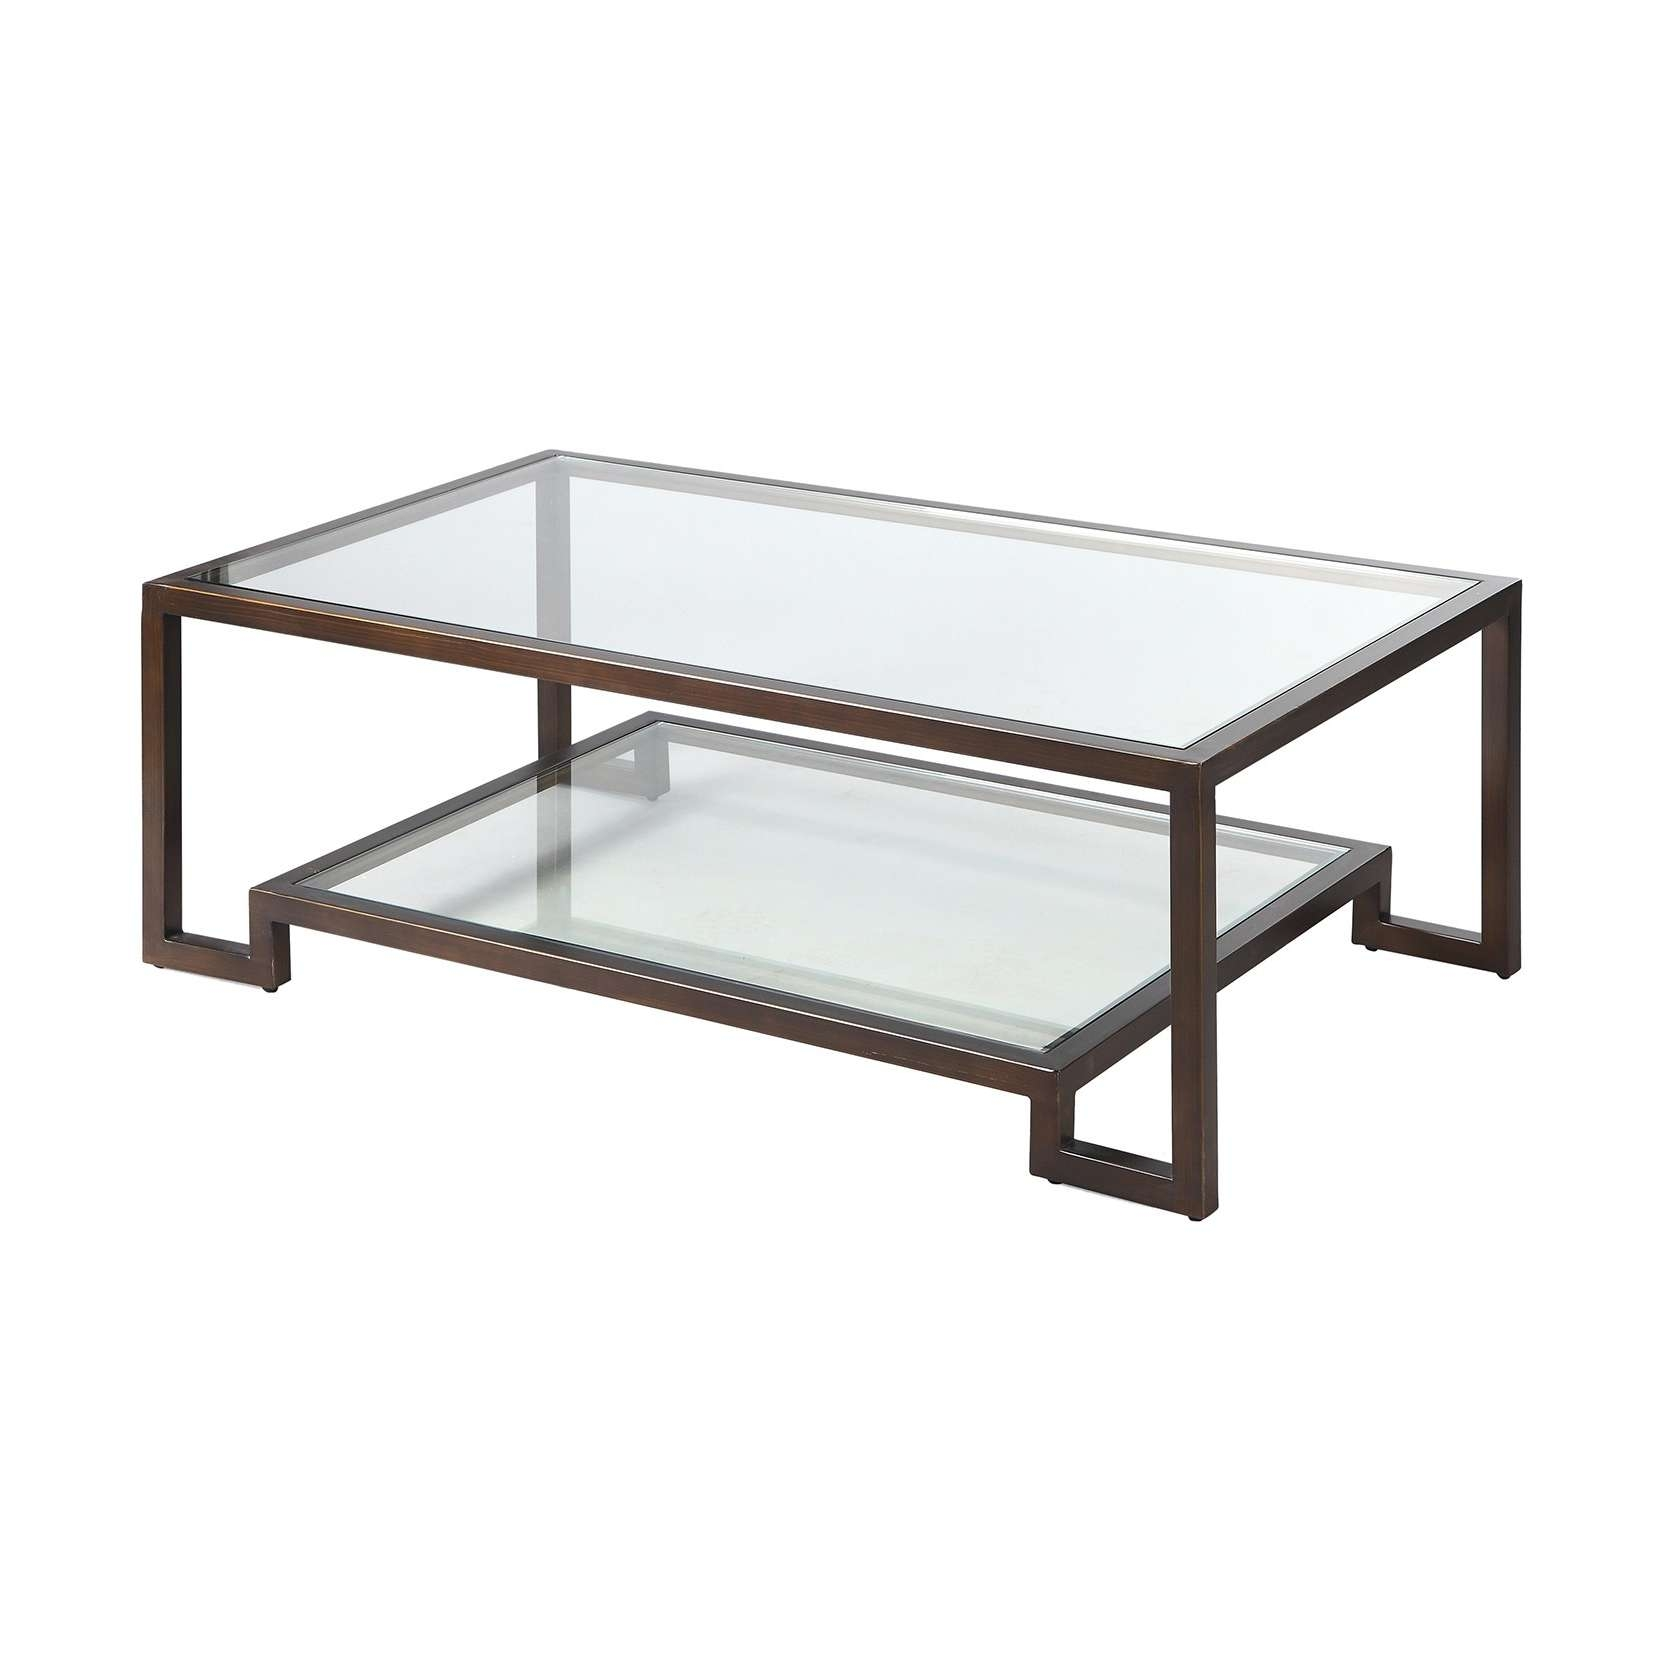 Coffee Table : Marvelous Coffee Table With Drawers Square Coffee With Regard To Favorite Bronze And Glass Coffee Tables (View 5 of 20)